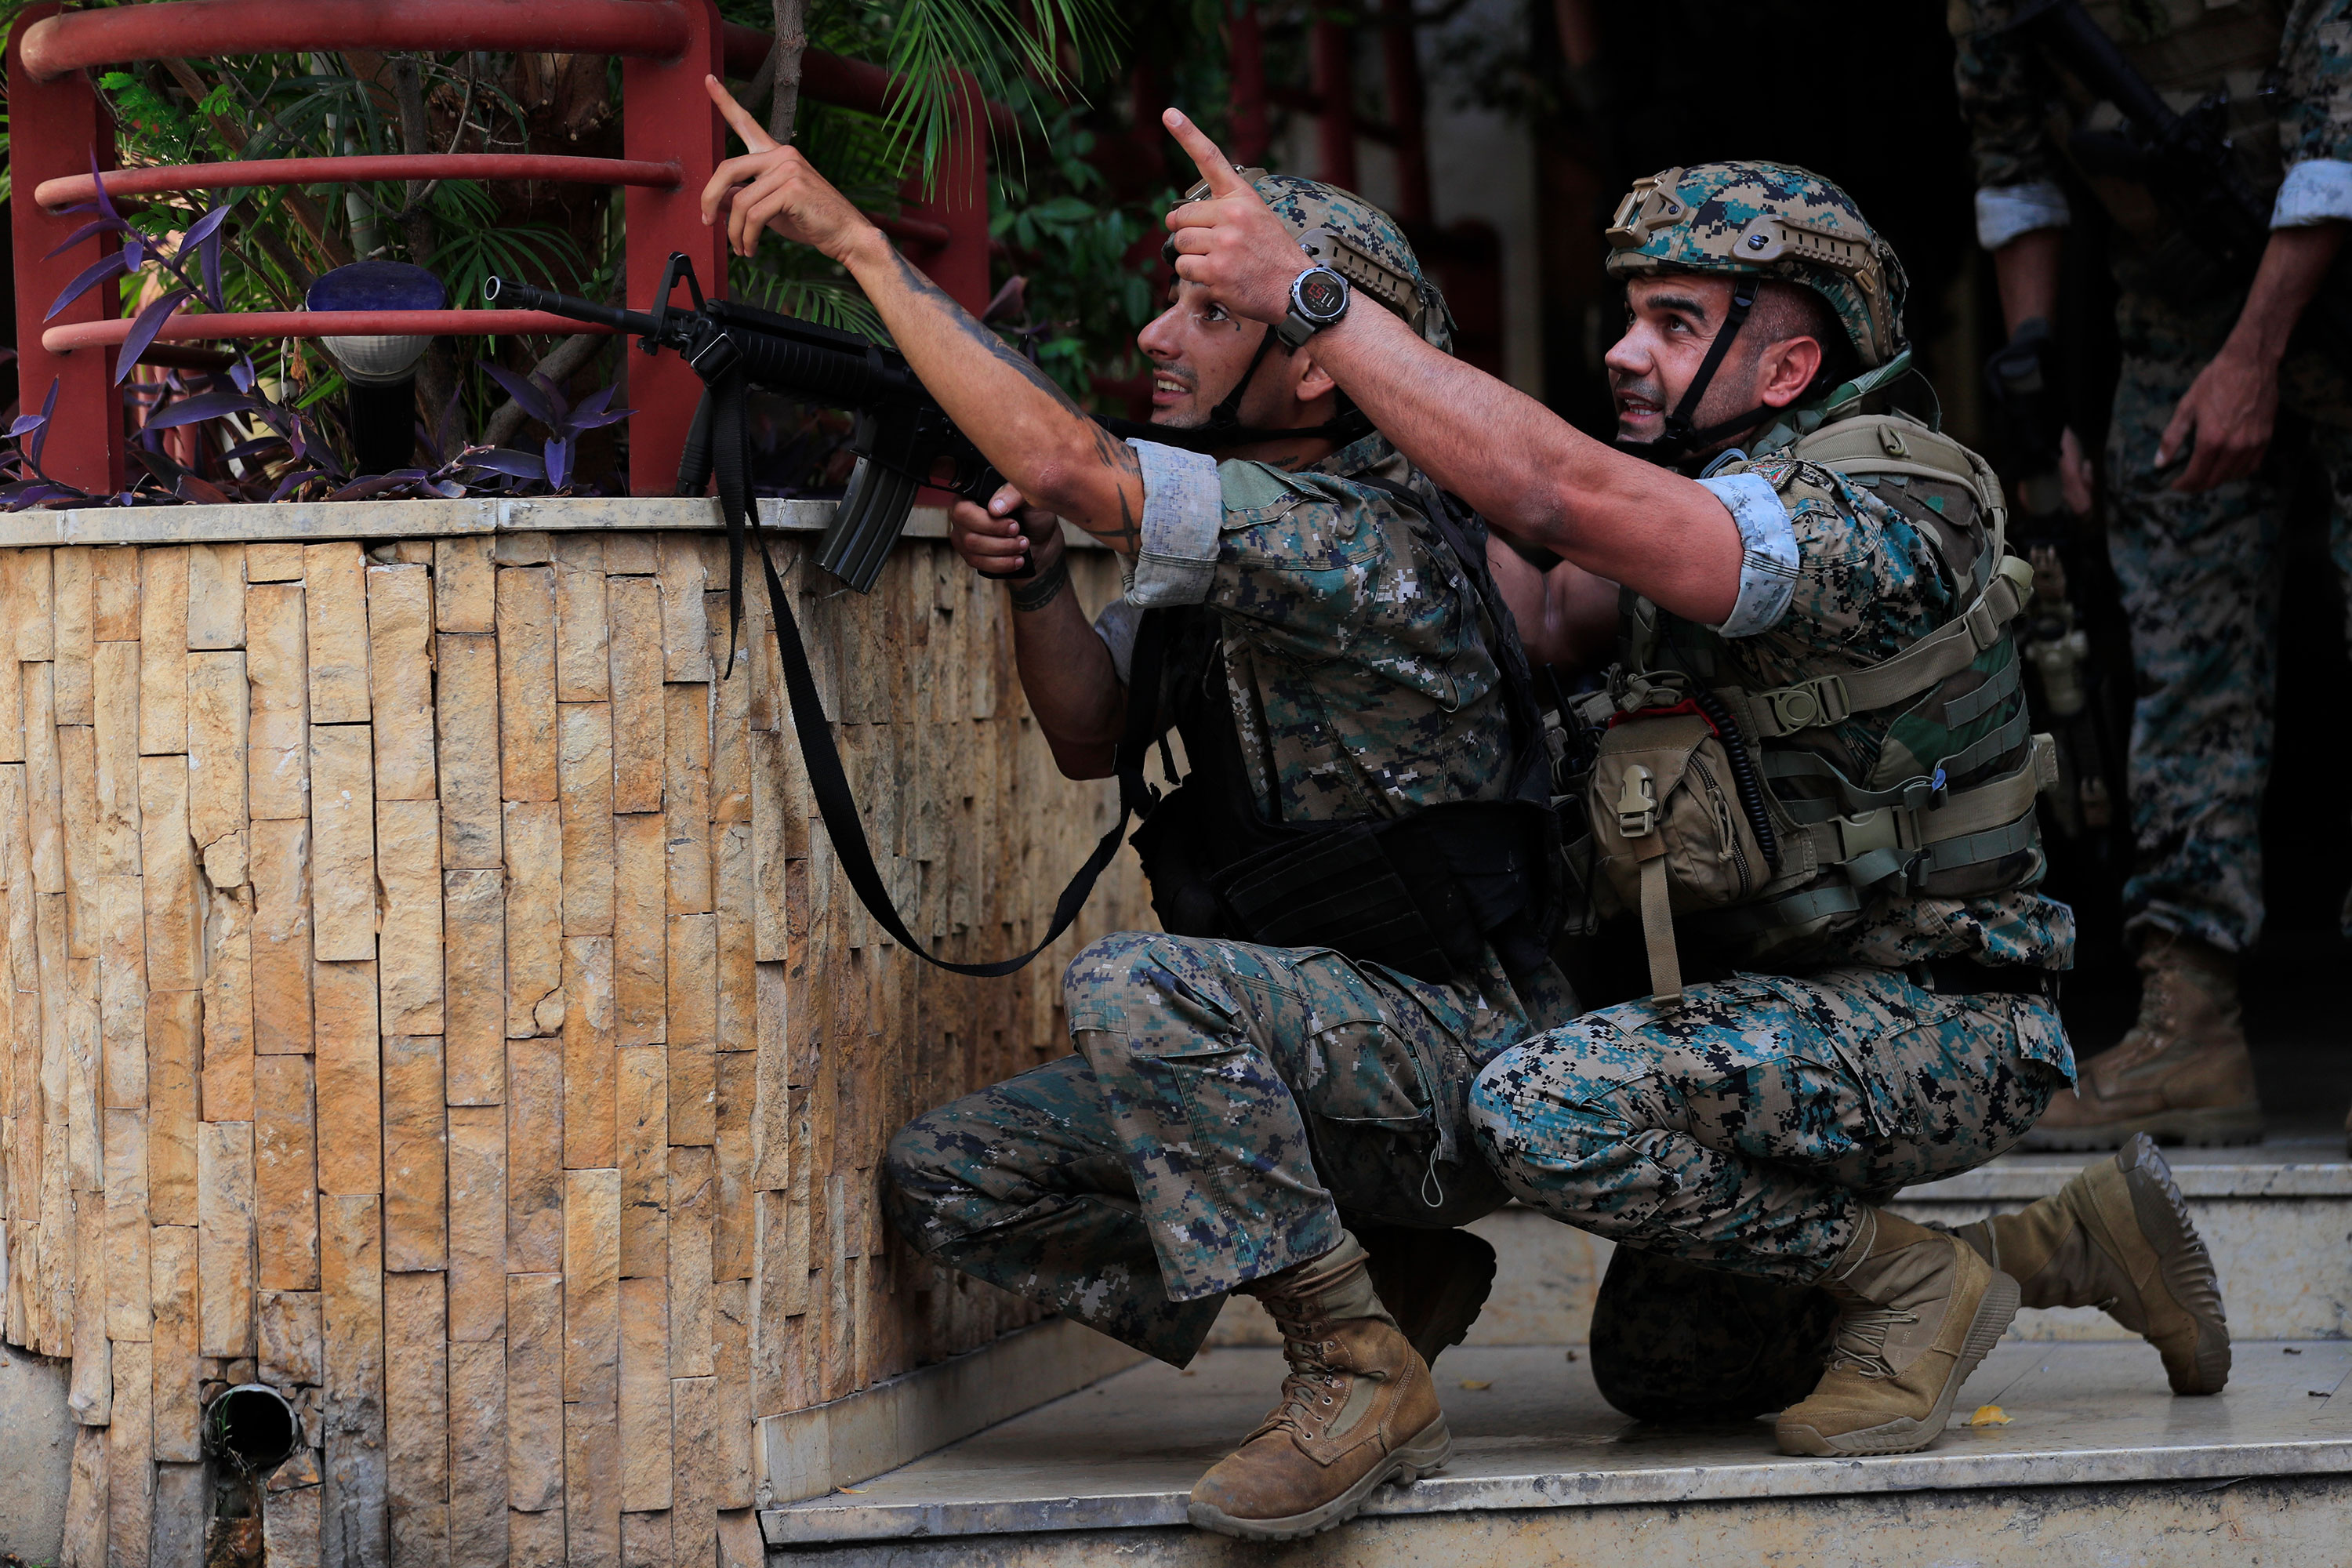 Lebanese security forces react to gunfire during a protest in Beirut on October 14.